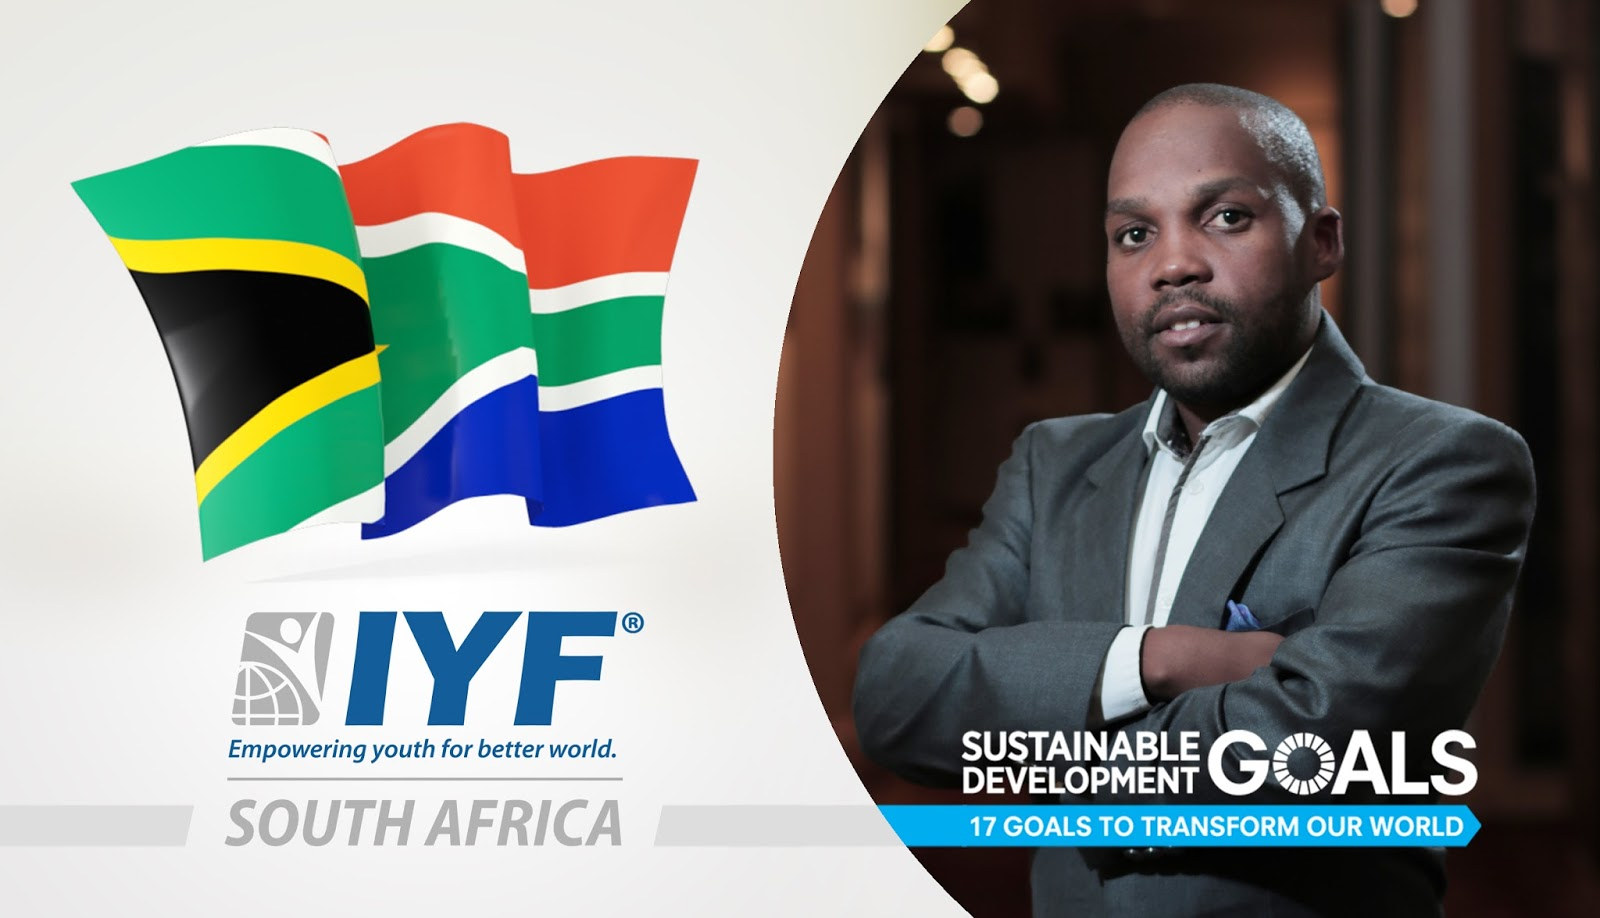 Kefiloe Mokoena, IYF Representative in South Africa